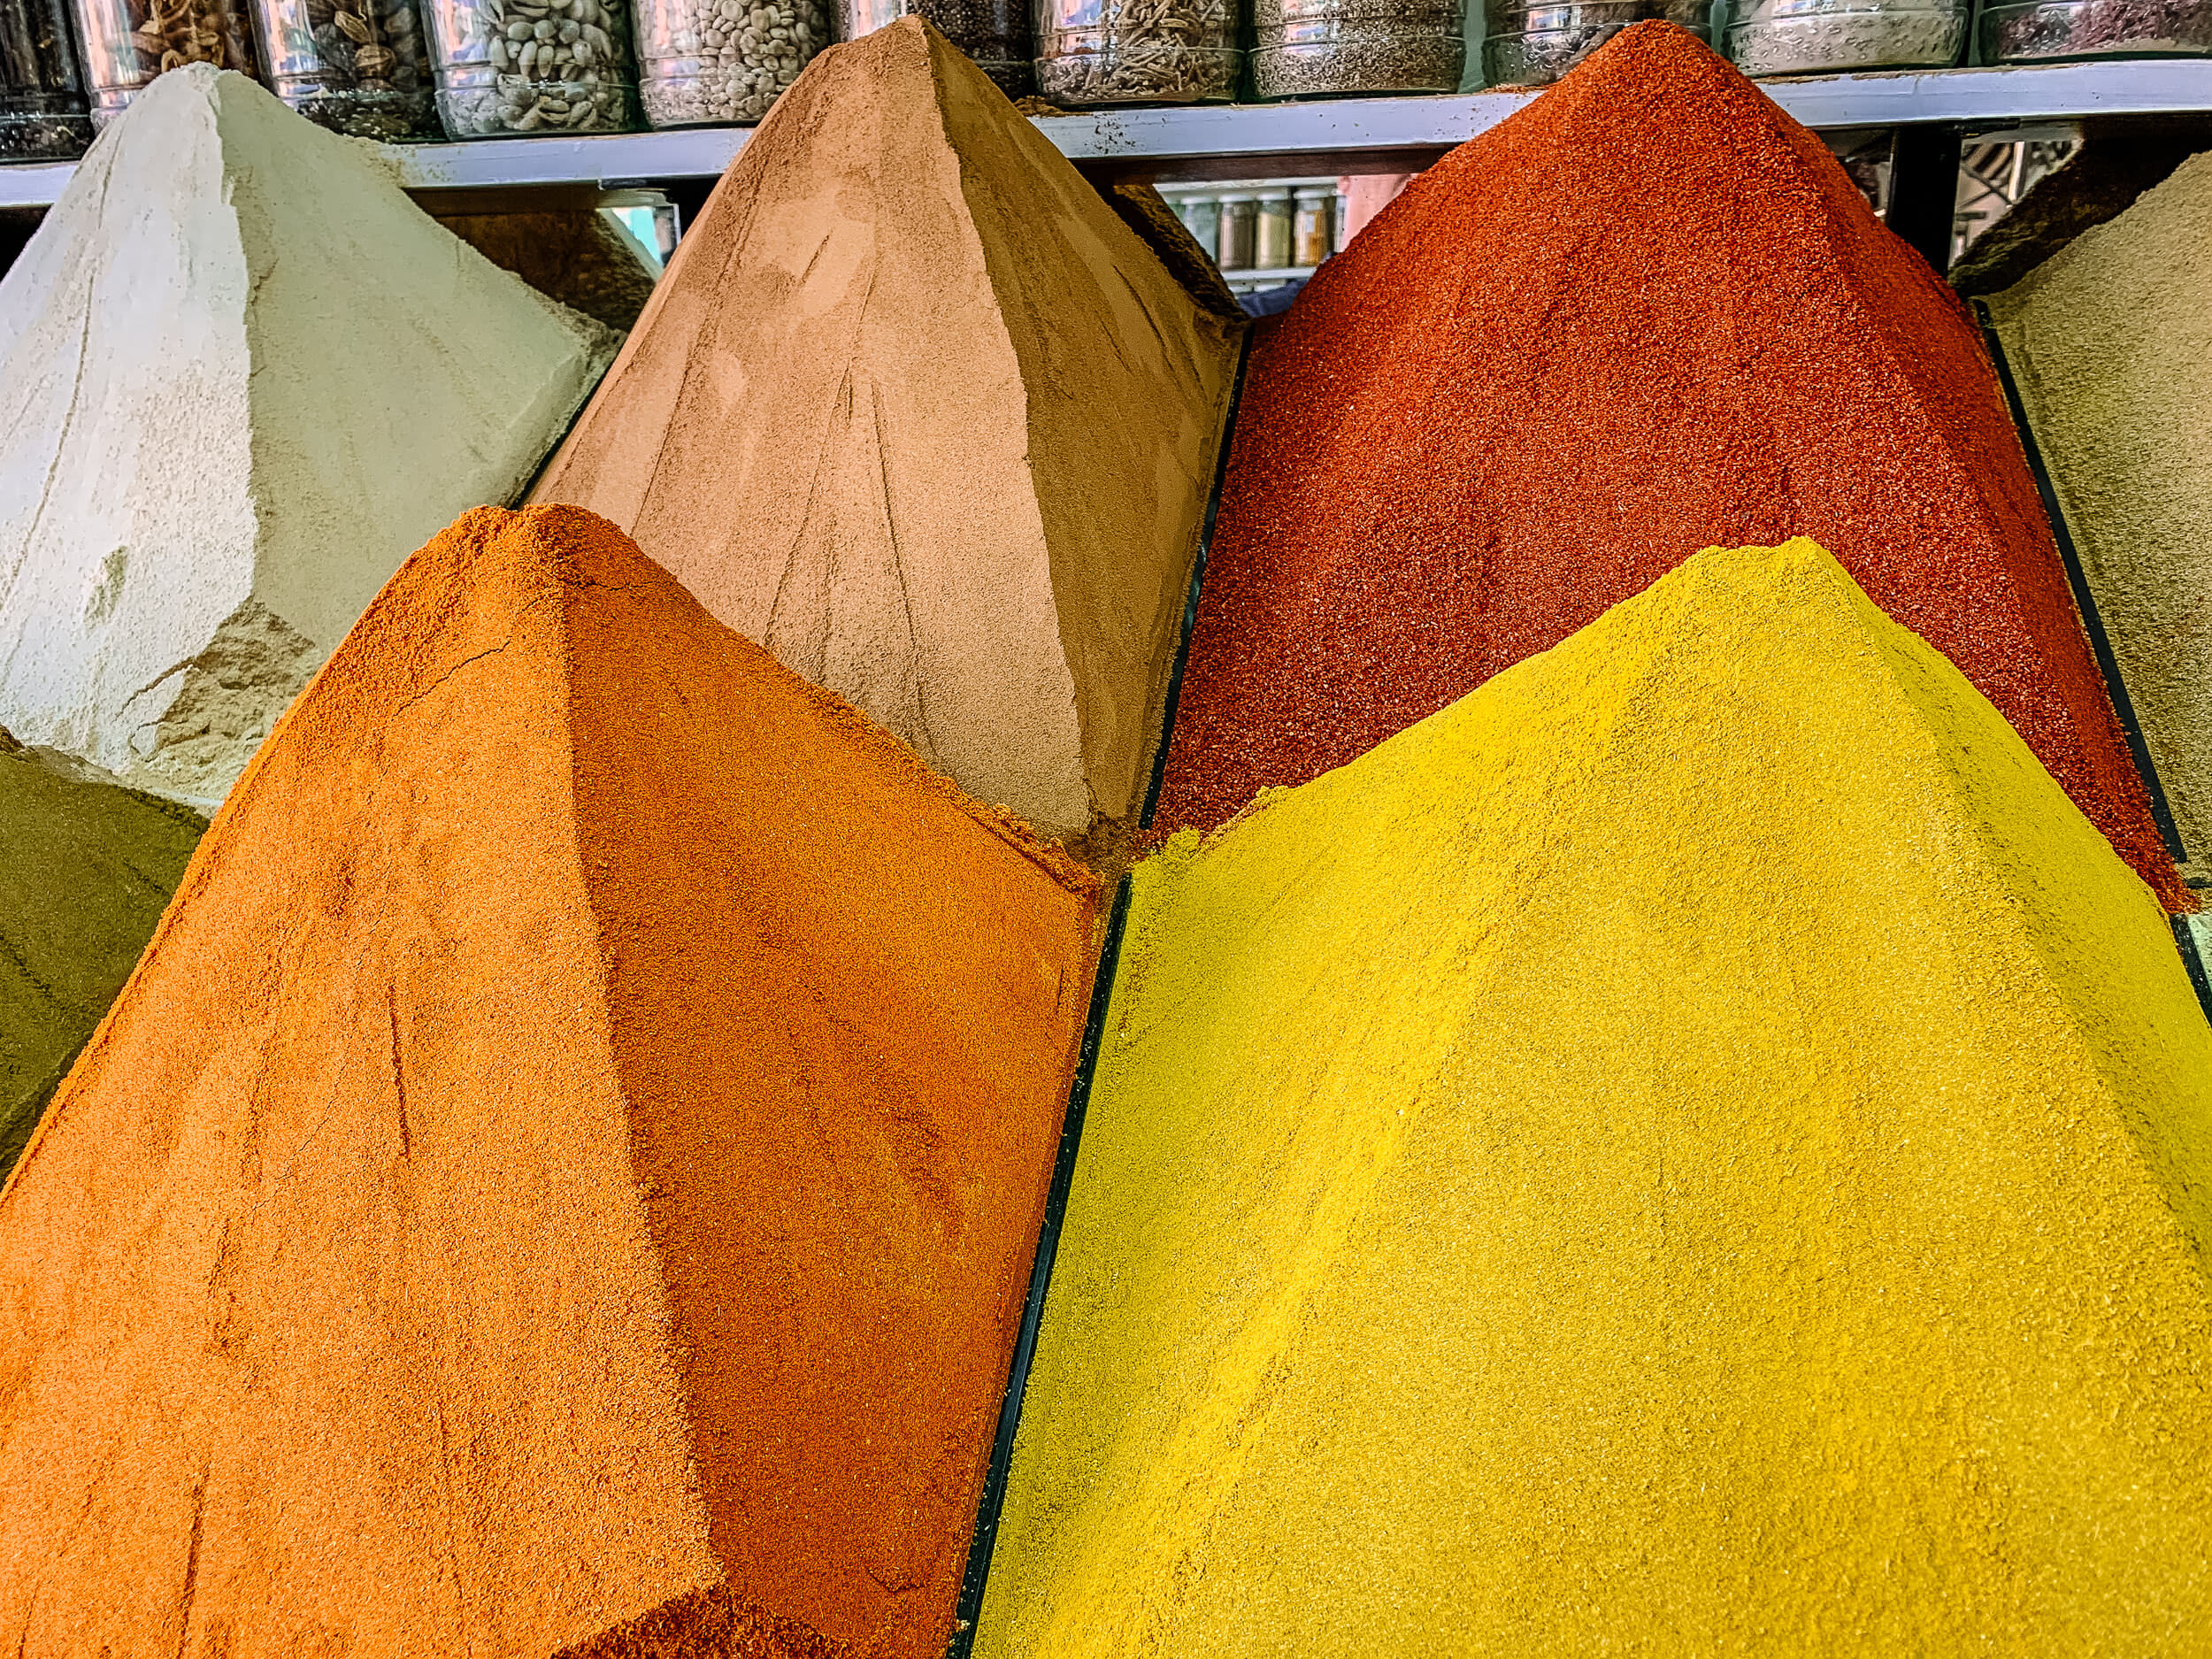 Spice piles in Marrakesh souk